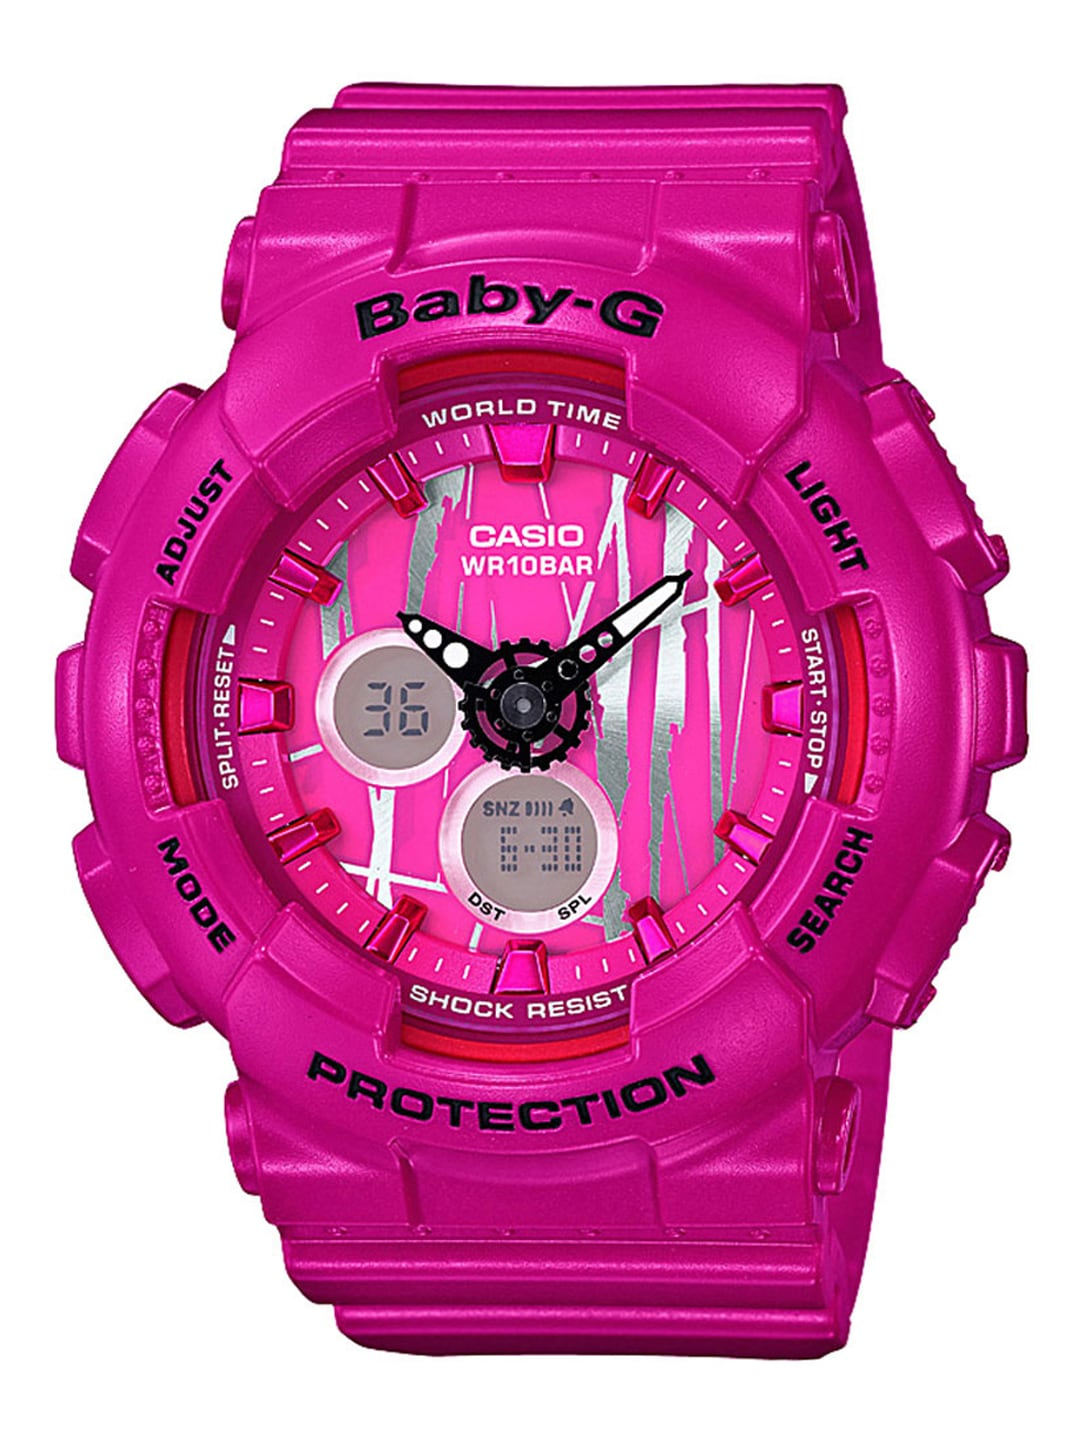 CASIO Women Pink Printed Analogue & Digital Watch B175 image